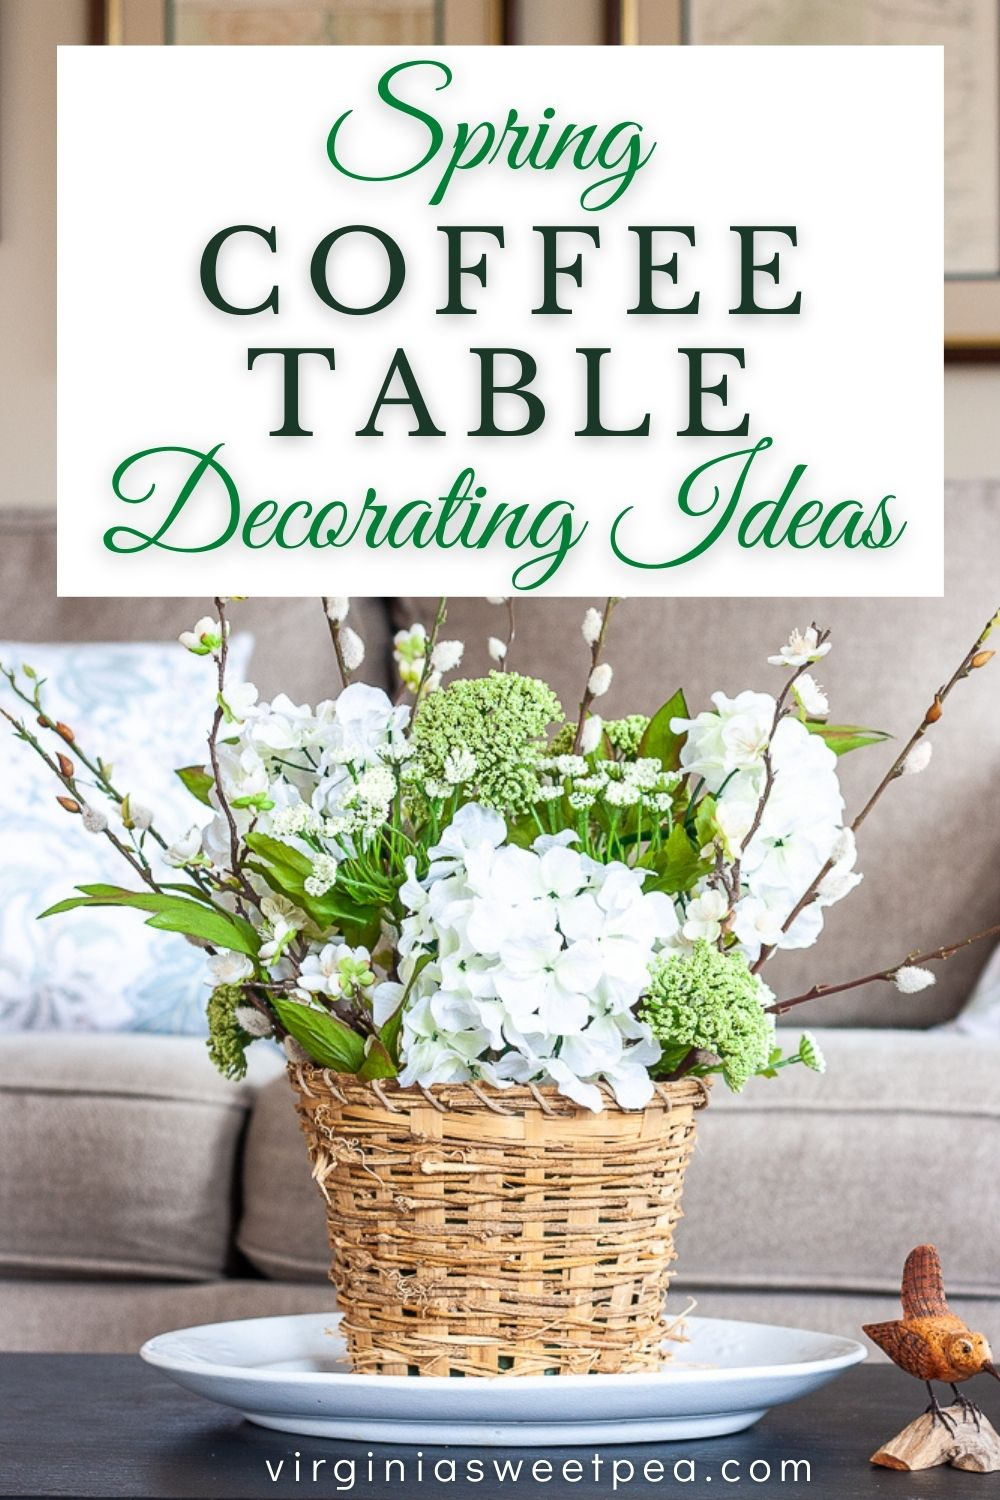 Get ideas for how to decorate your coffee table for spring.  Included are spring table centerpiece ideas and ideas for accessorizing a coffee table for spring.  via @spaula